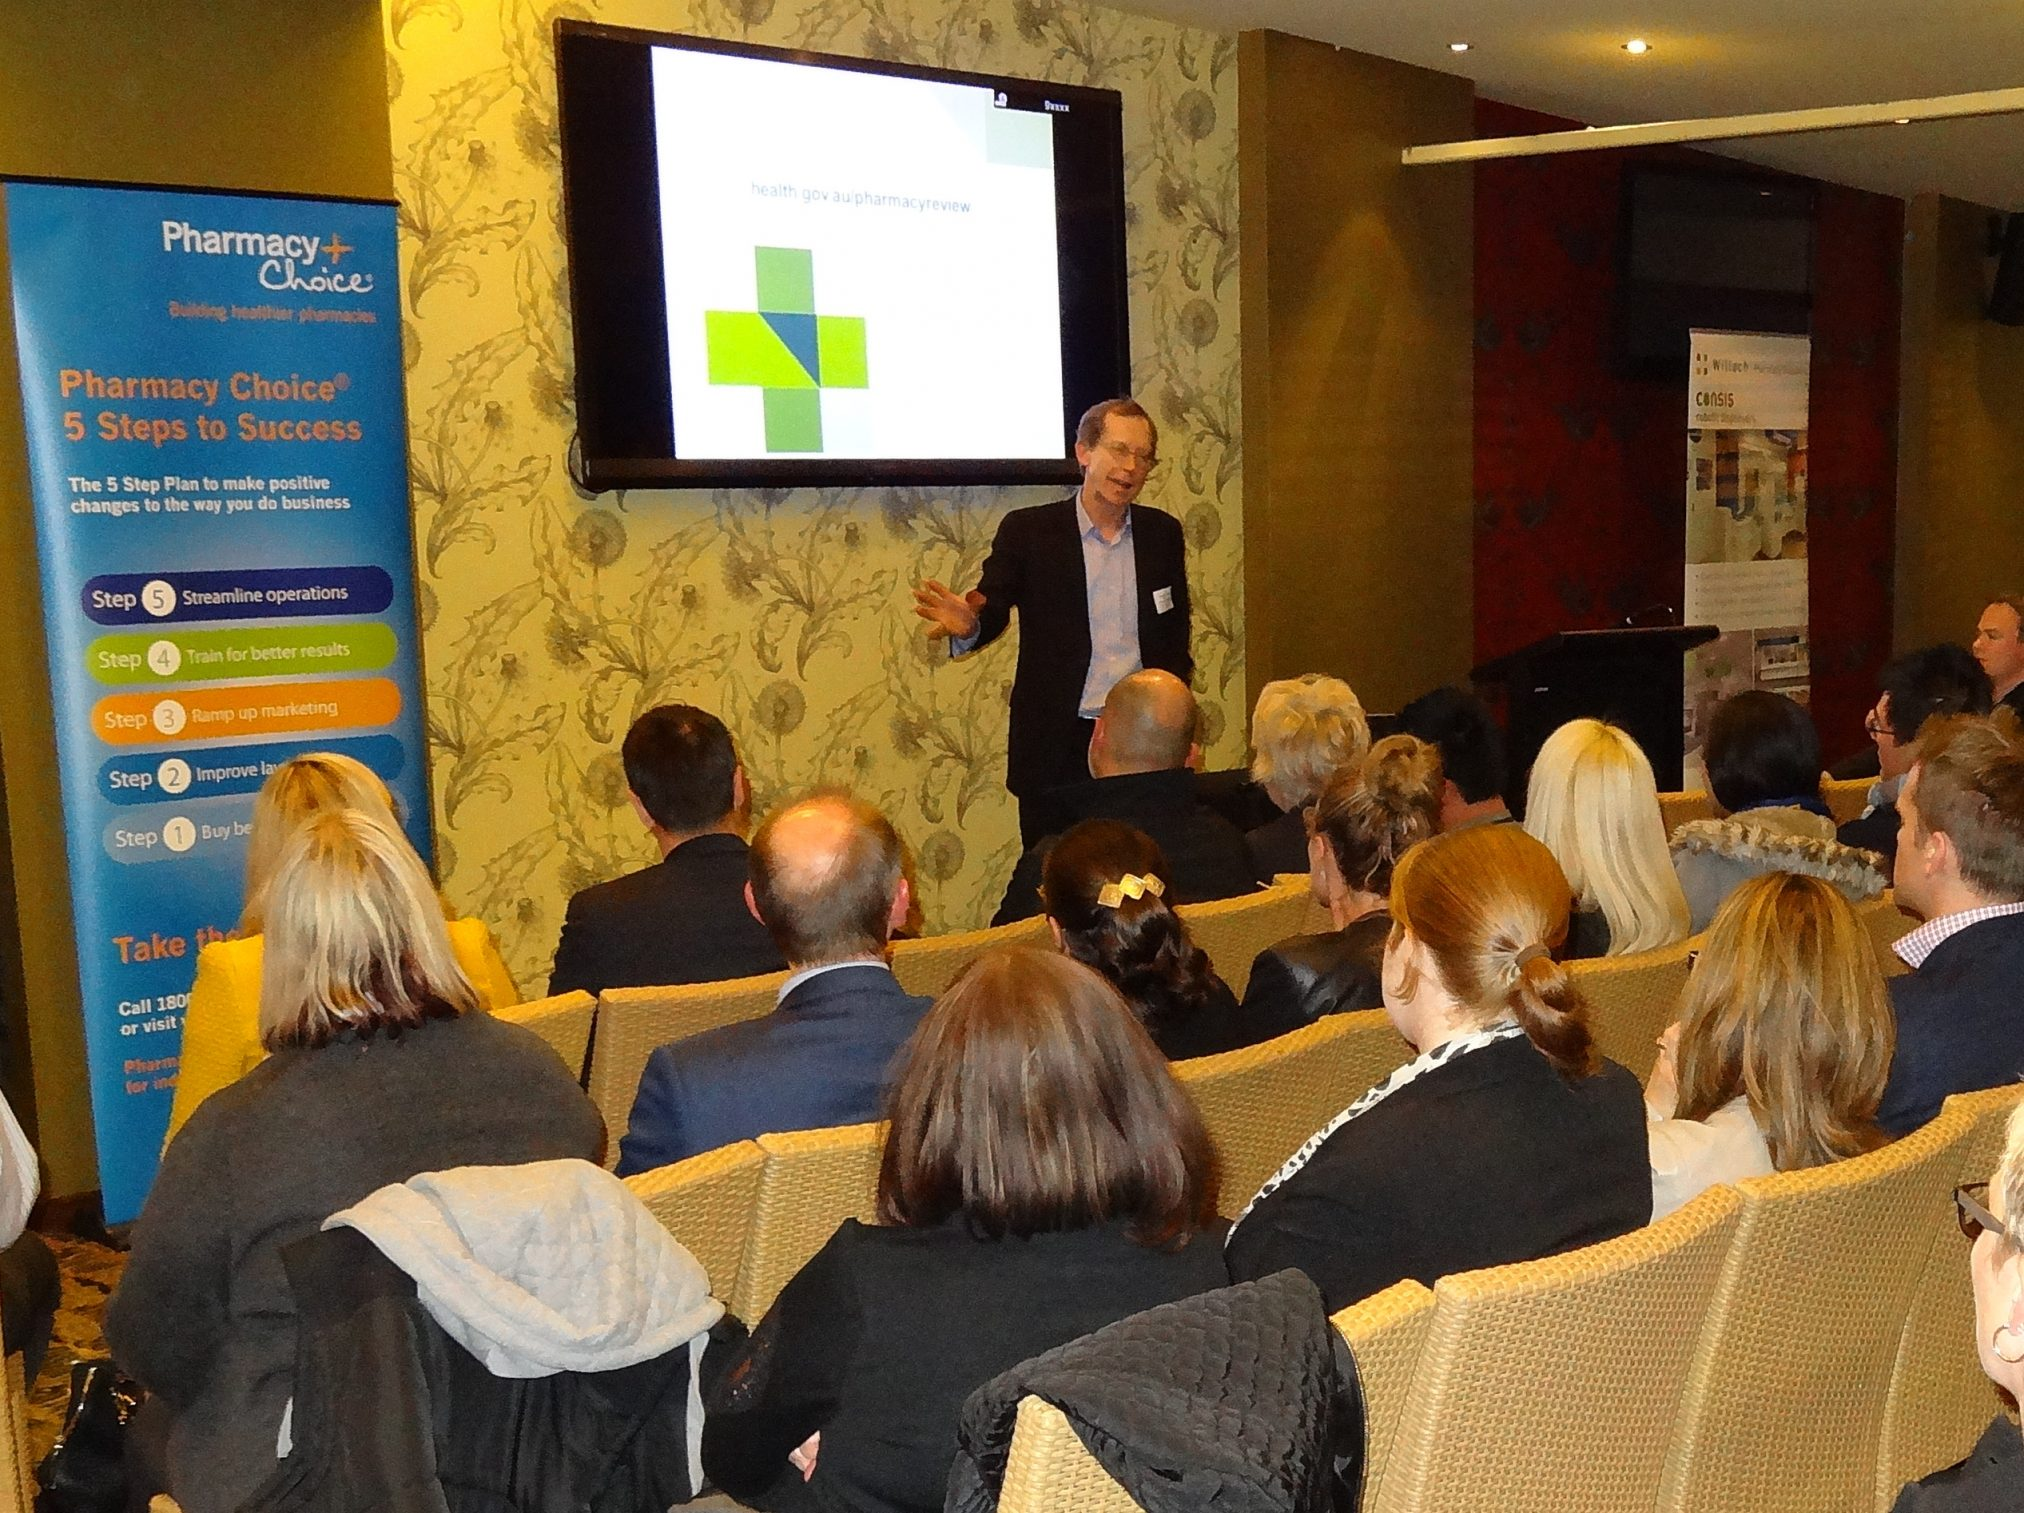 Stephen King presents at Pharmacy Choice event